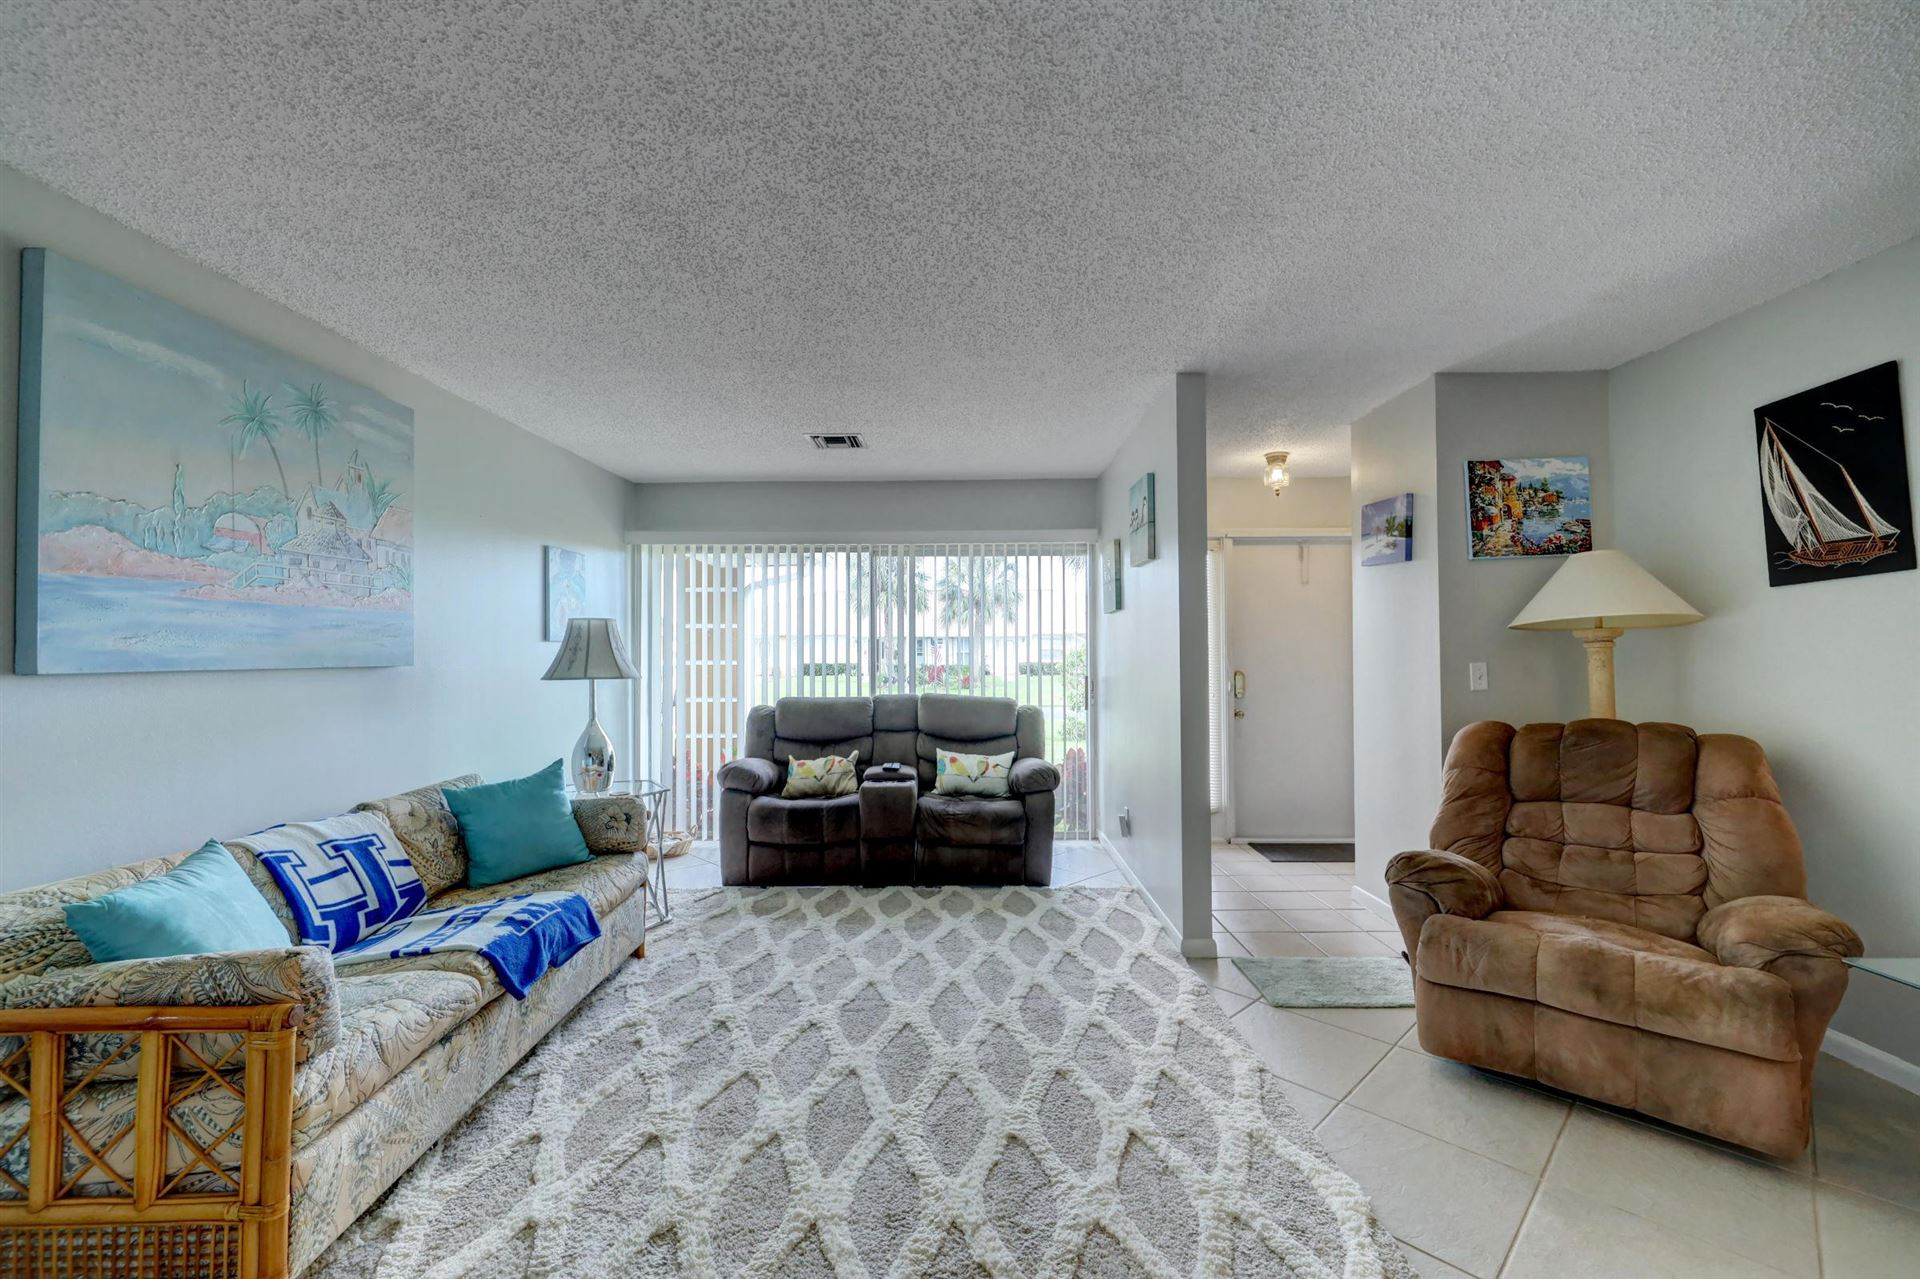 Photo of 1227 S Lakes End Drive #Apt C, Fort Pierce, FL 34982 (MLS # RX-10672443)